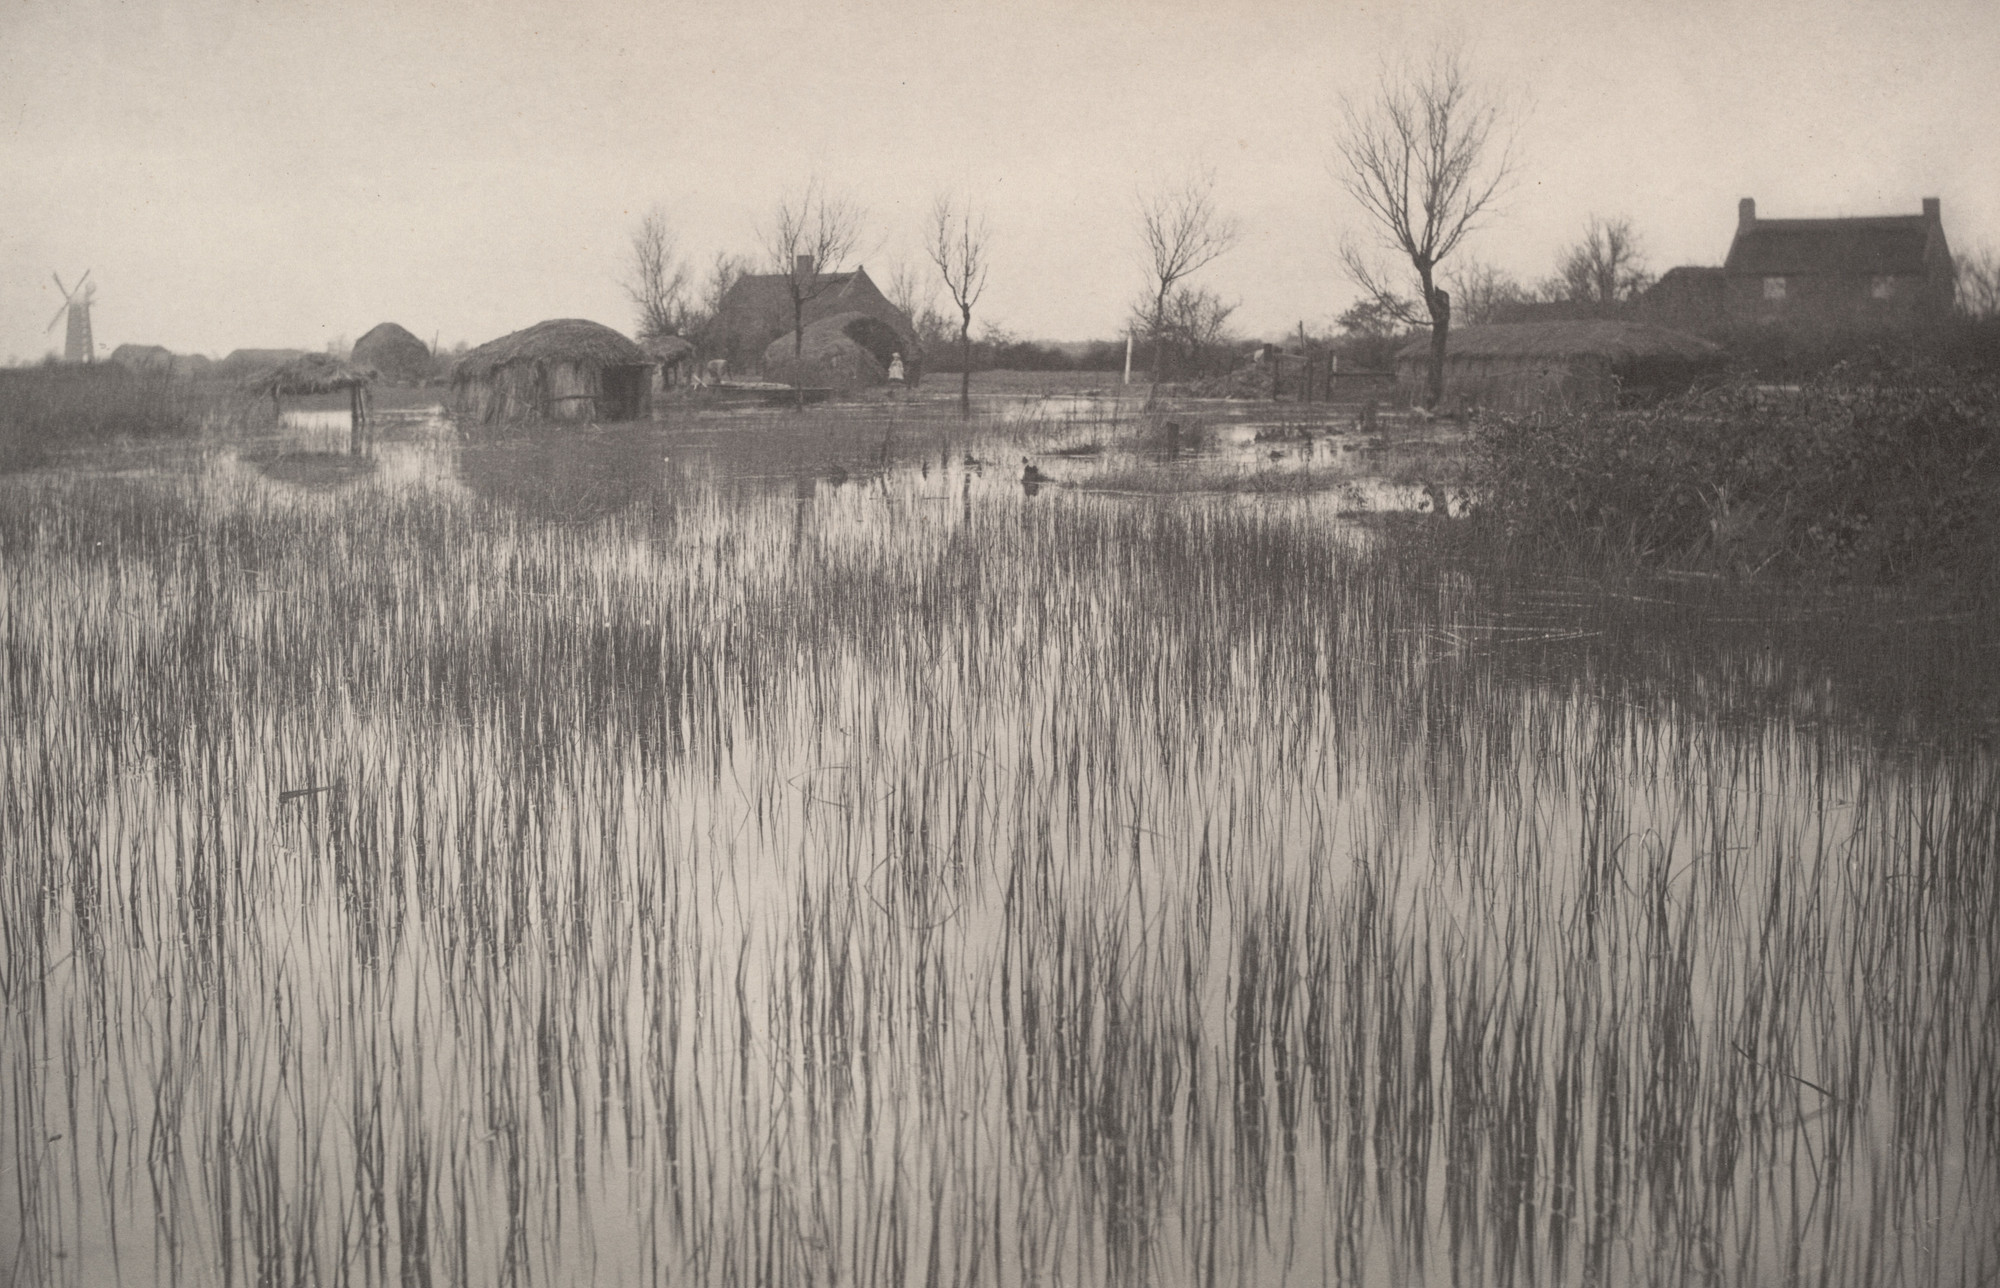 Peter Henry Emerson, T. F. Goodall. A Rushy Shore from Life and Landscape on the Norfolk Broads (1886). c. 1885